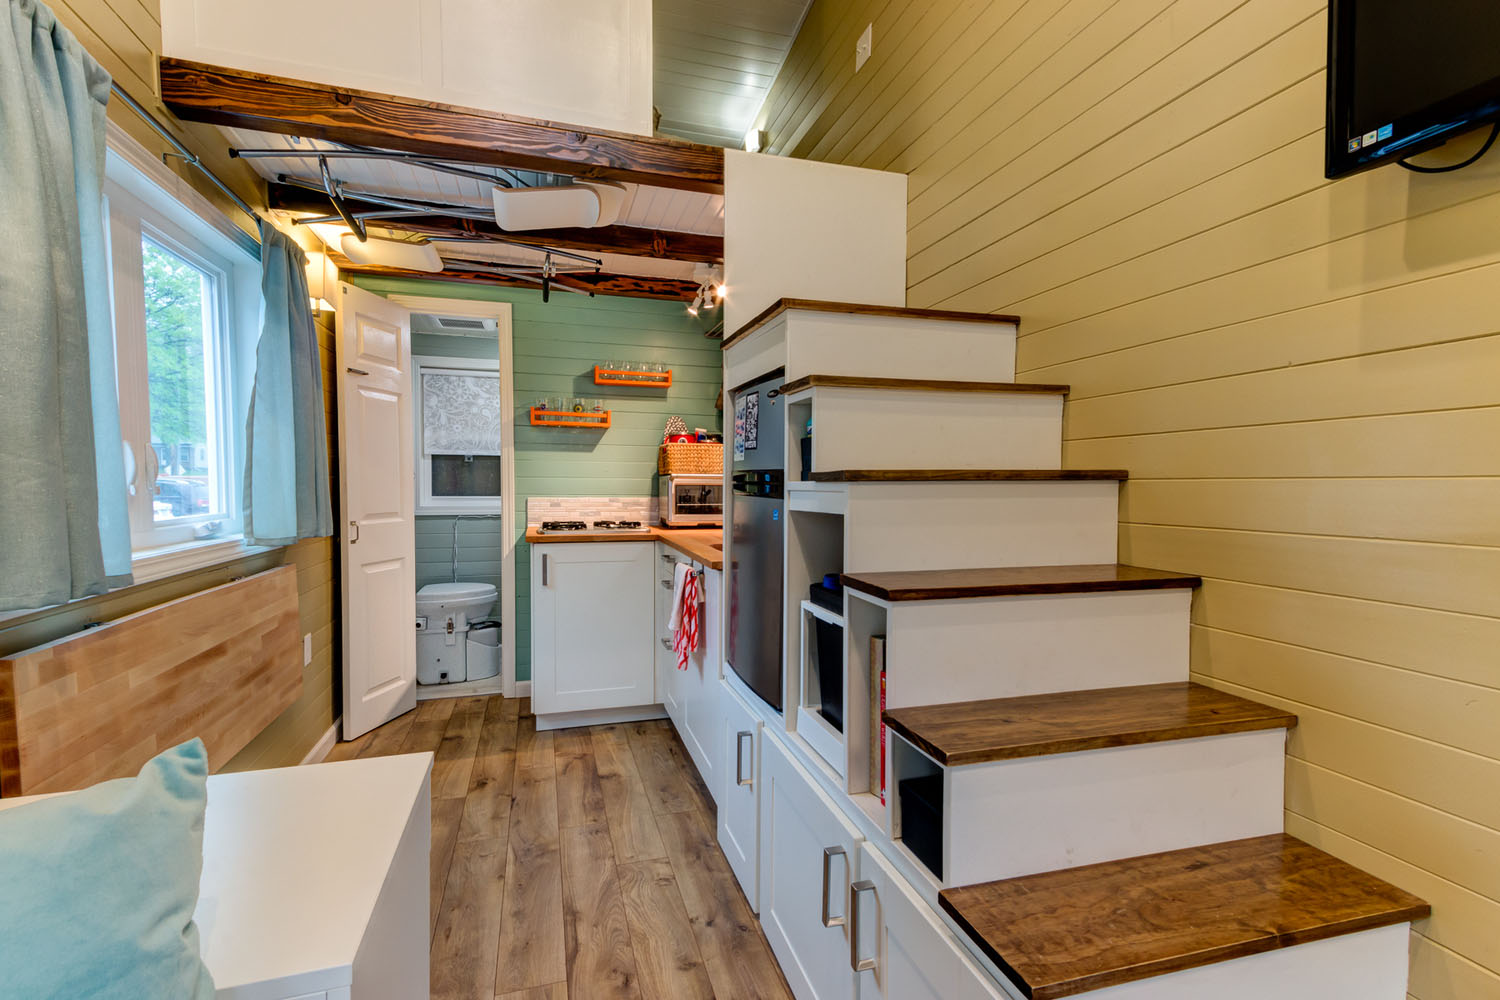 Wanderlust Tiny House on tiny home layout